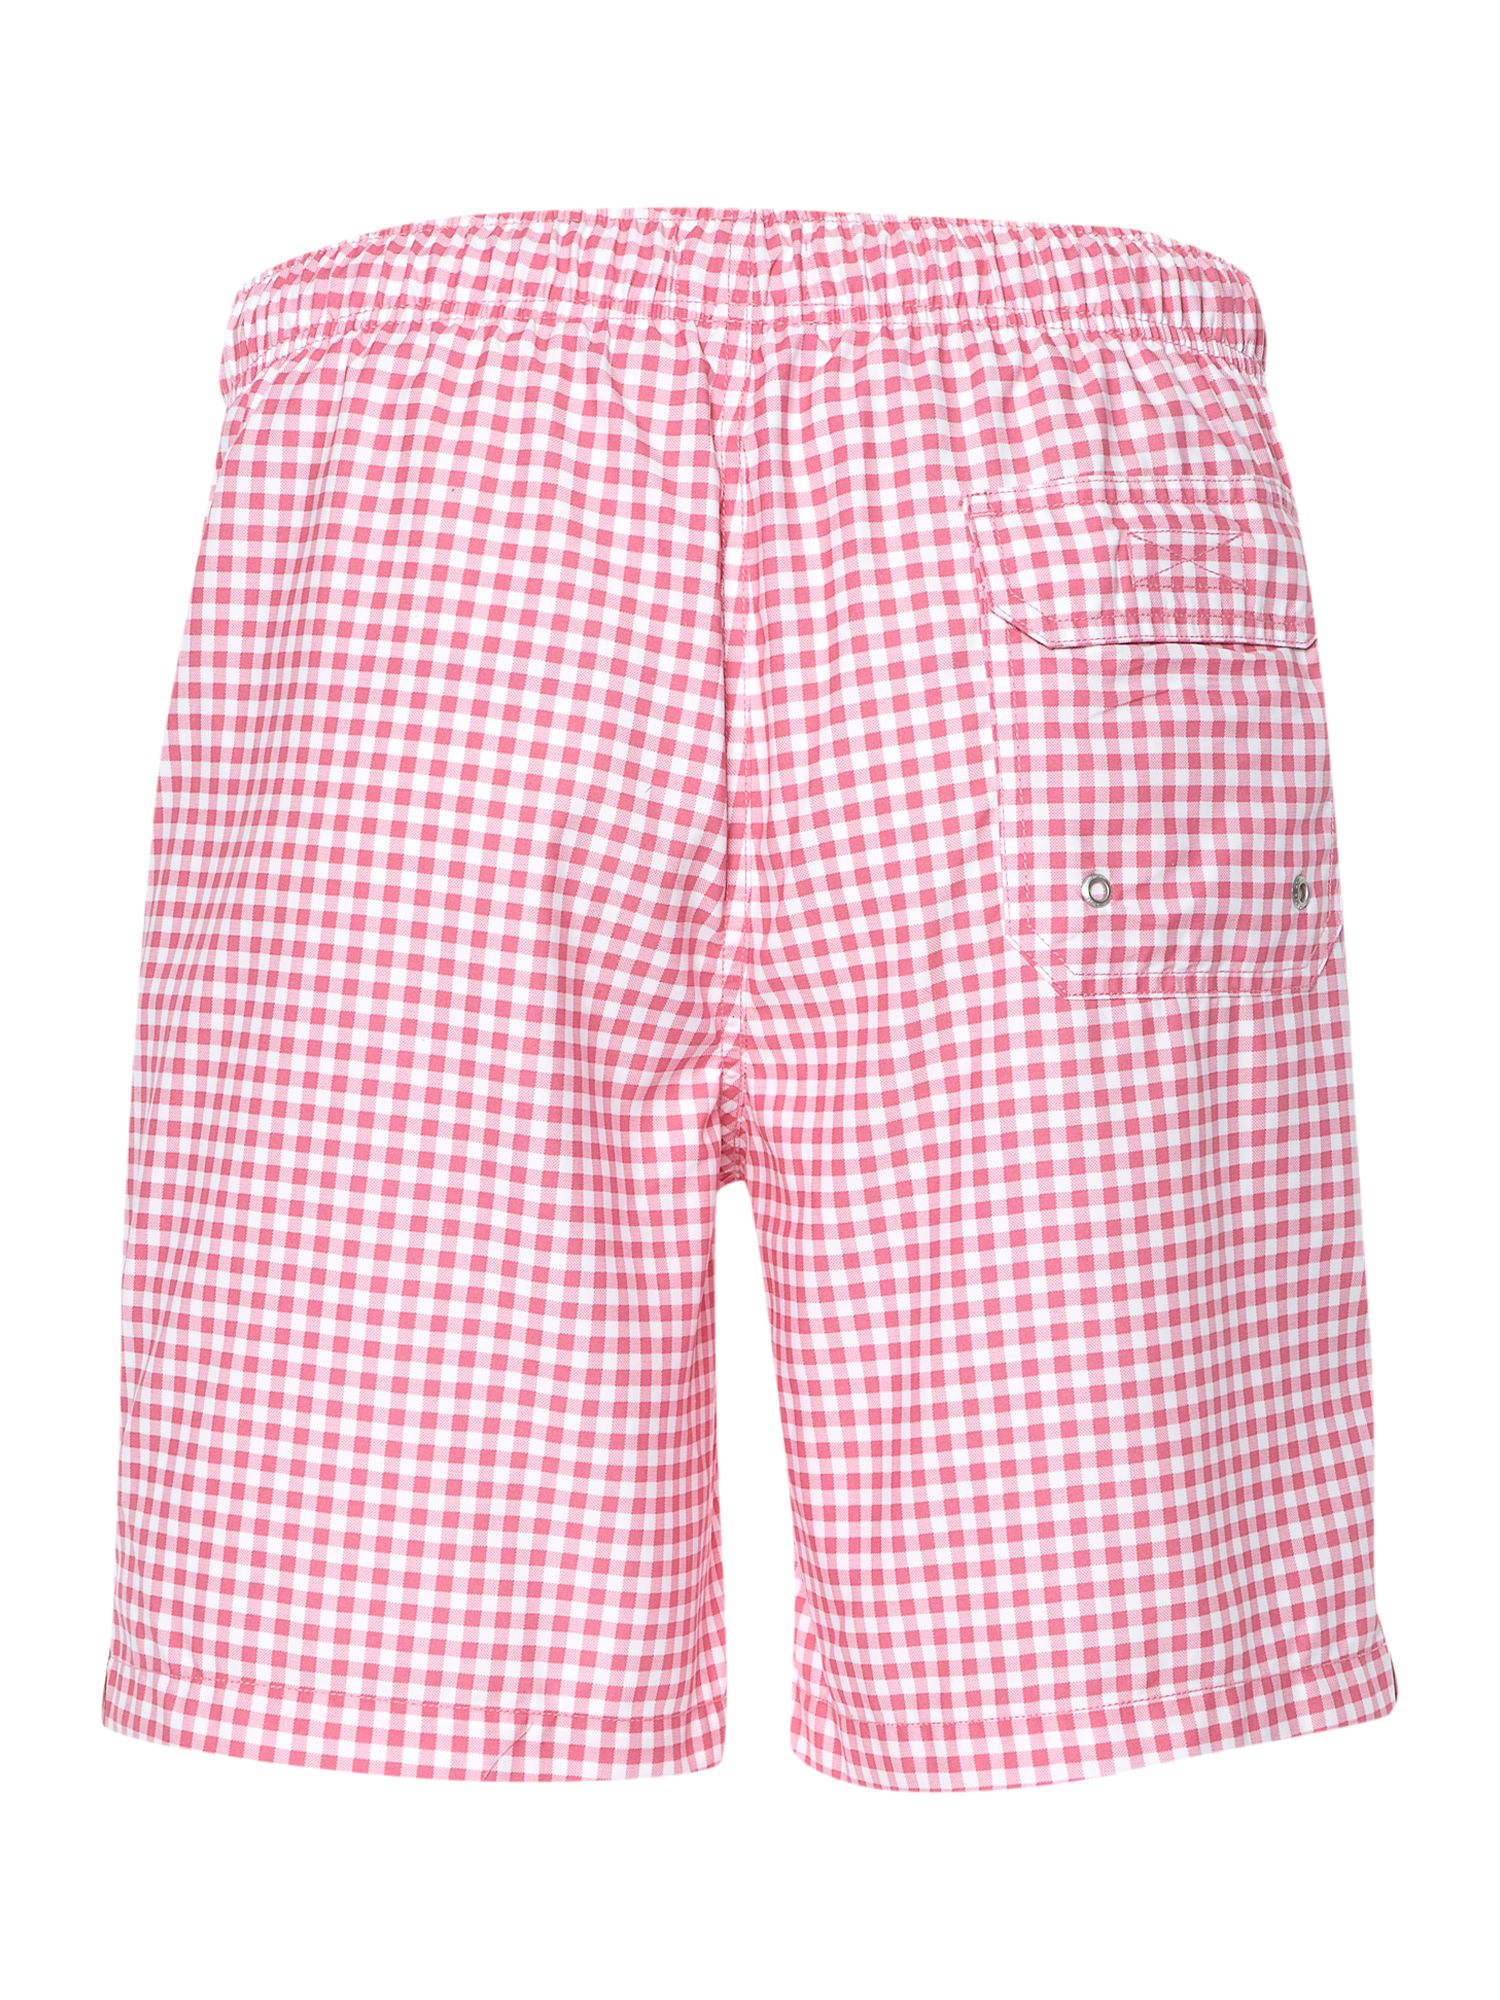 Gingham check swim short